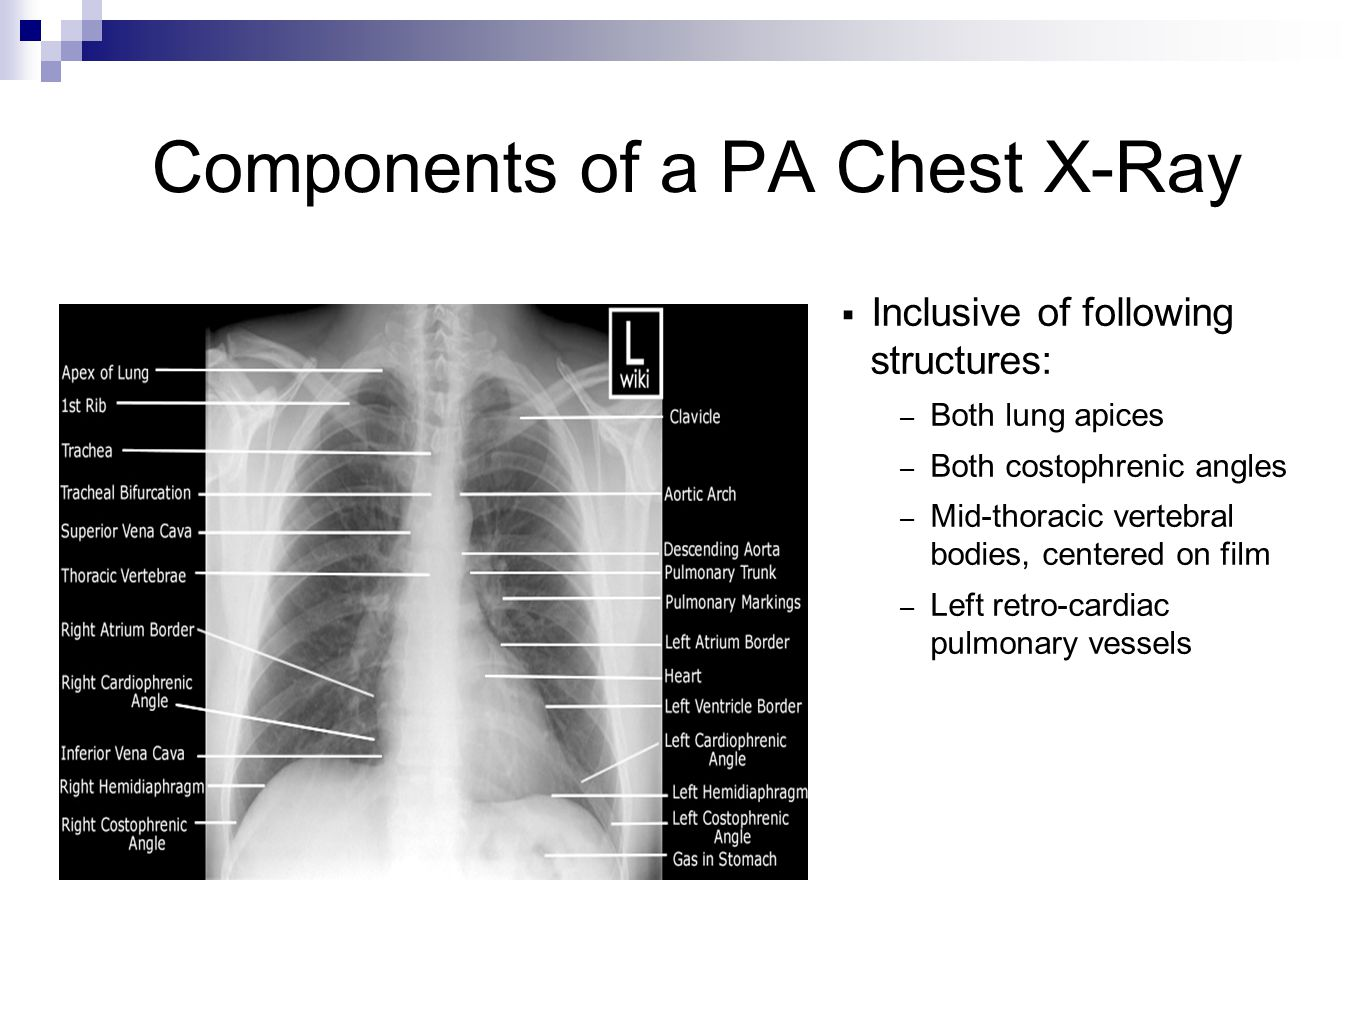 Lateral Decubitus  Assess volume of pleural effusion  Determine if effusion is mobile or loculated http://www.med-ed.virginia.edu/courses/rad/cxr/technique4chest.html